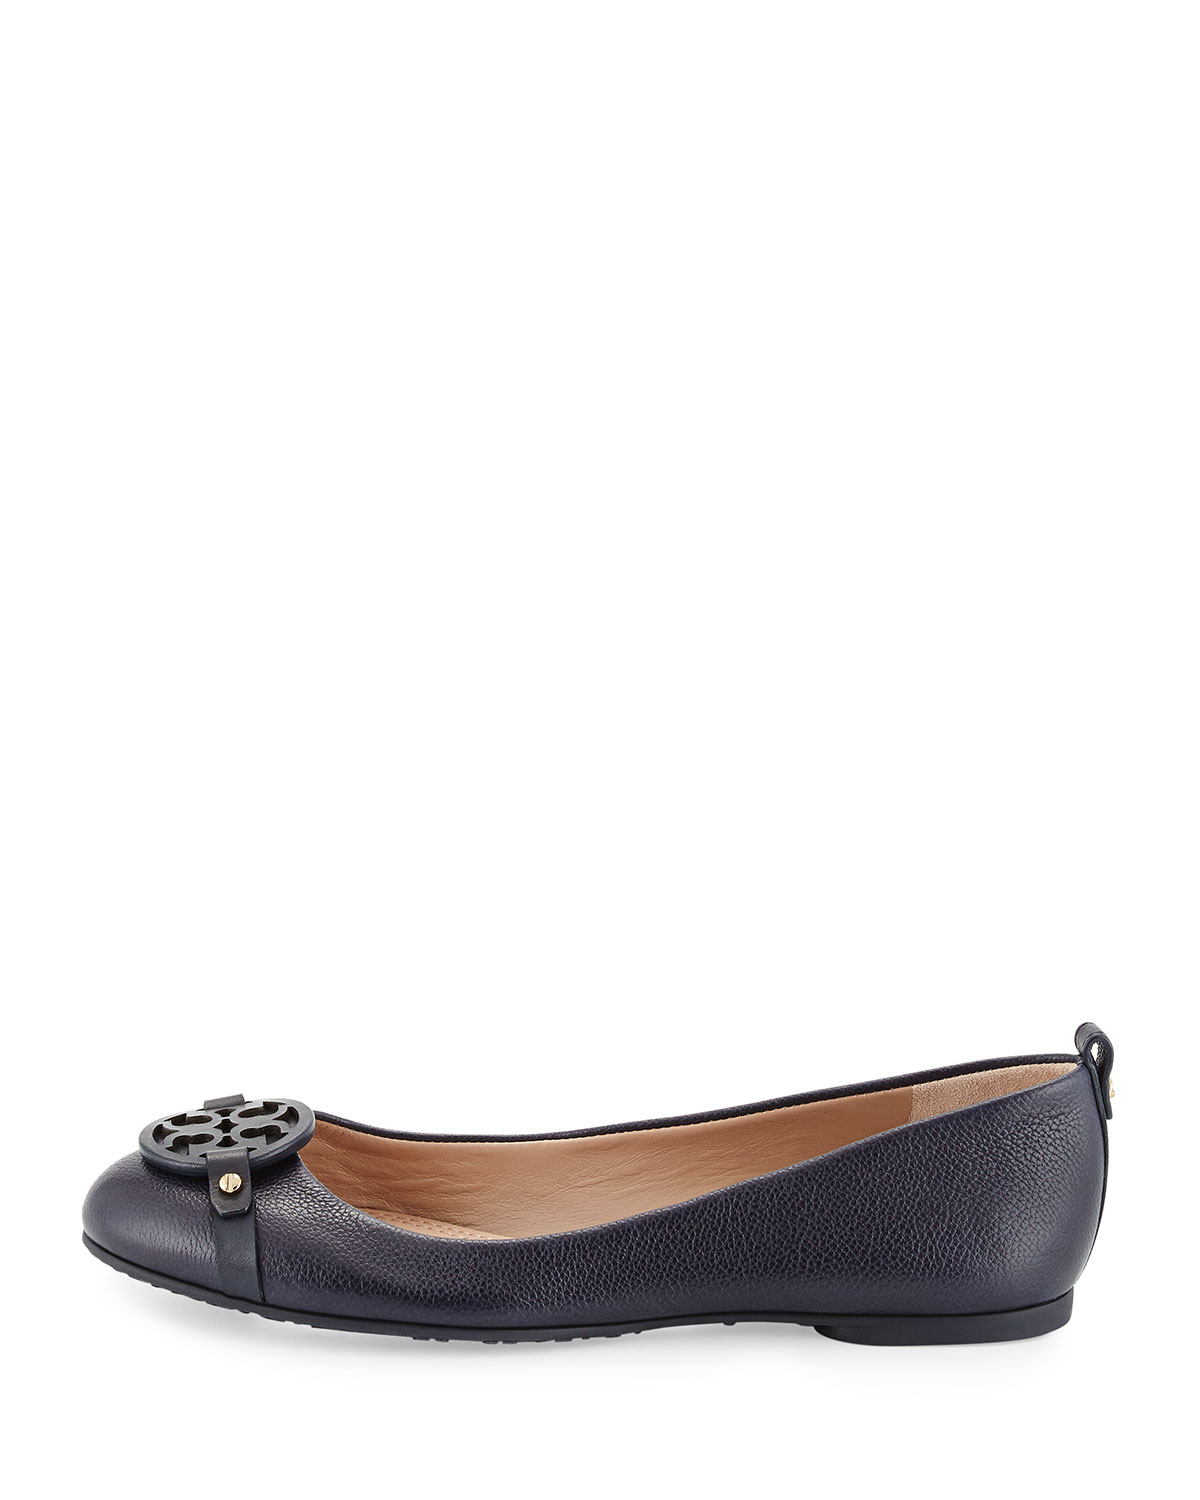 52eb60cc903ec2 Lyst - Tory Burch Mini Miller Leather Ballet Flats in Blue